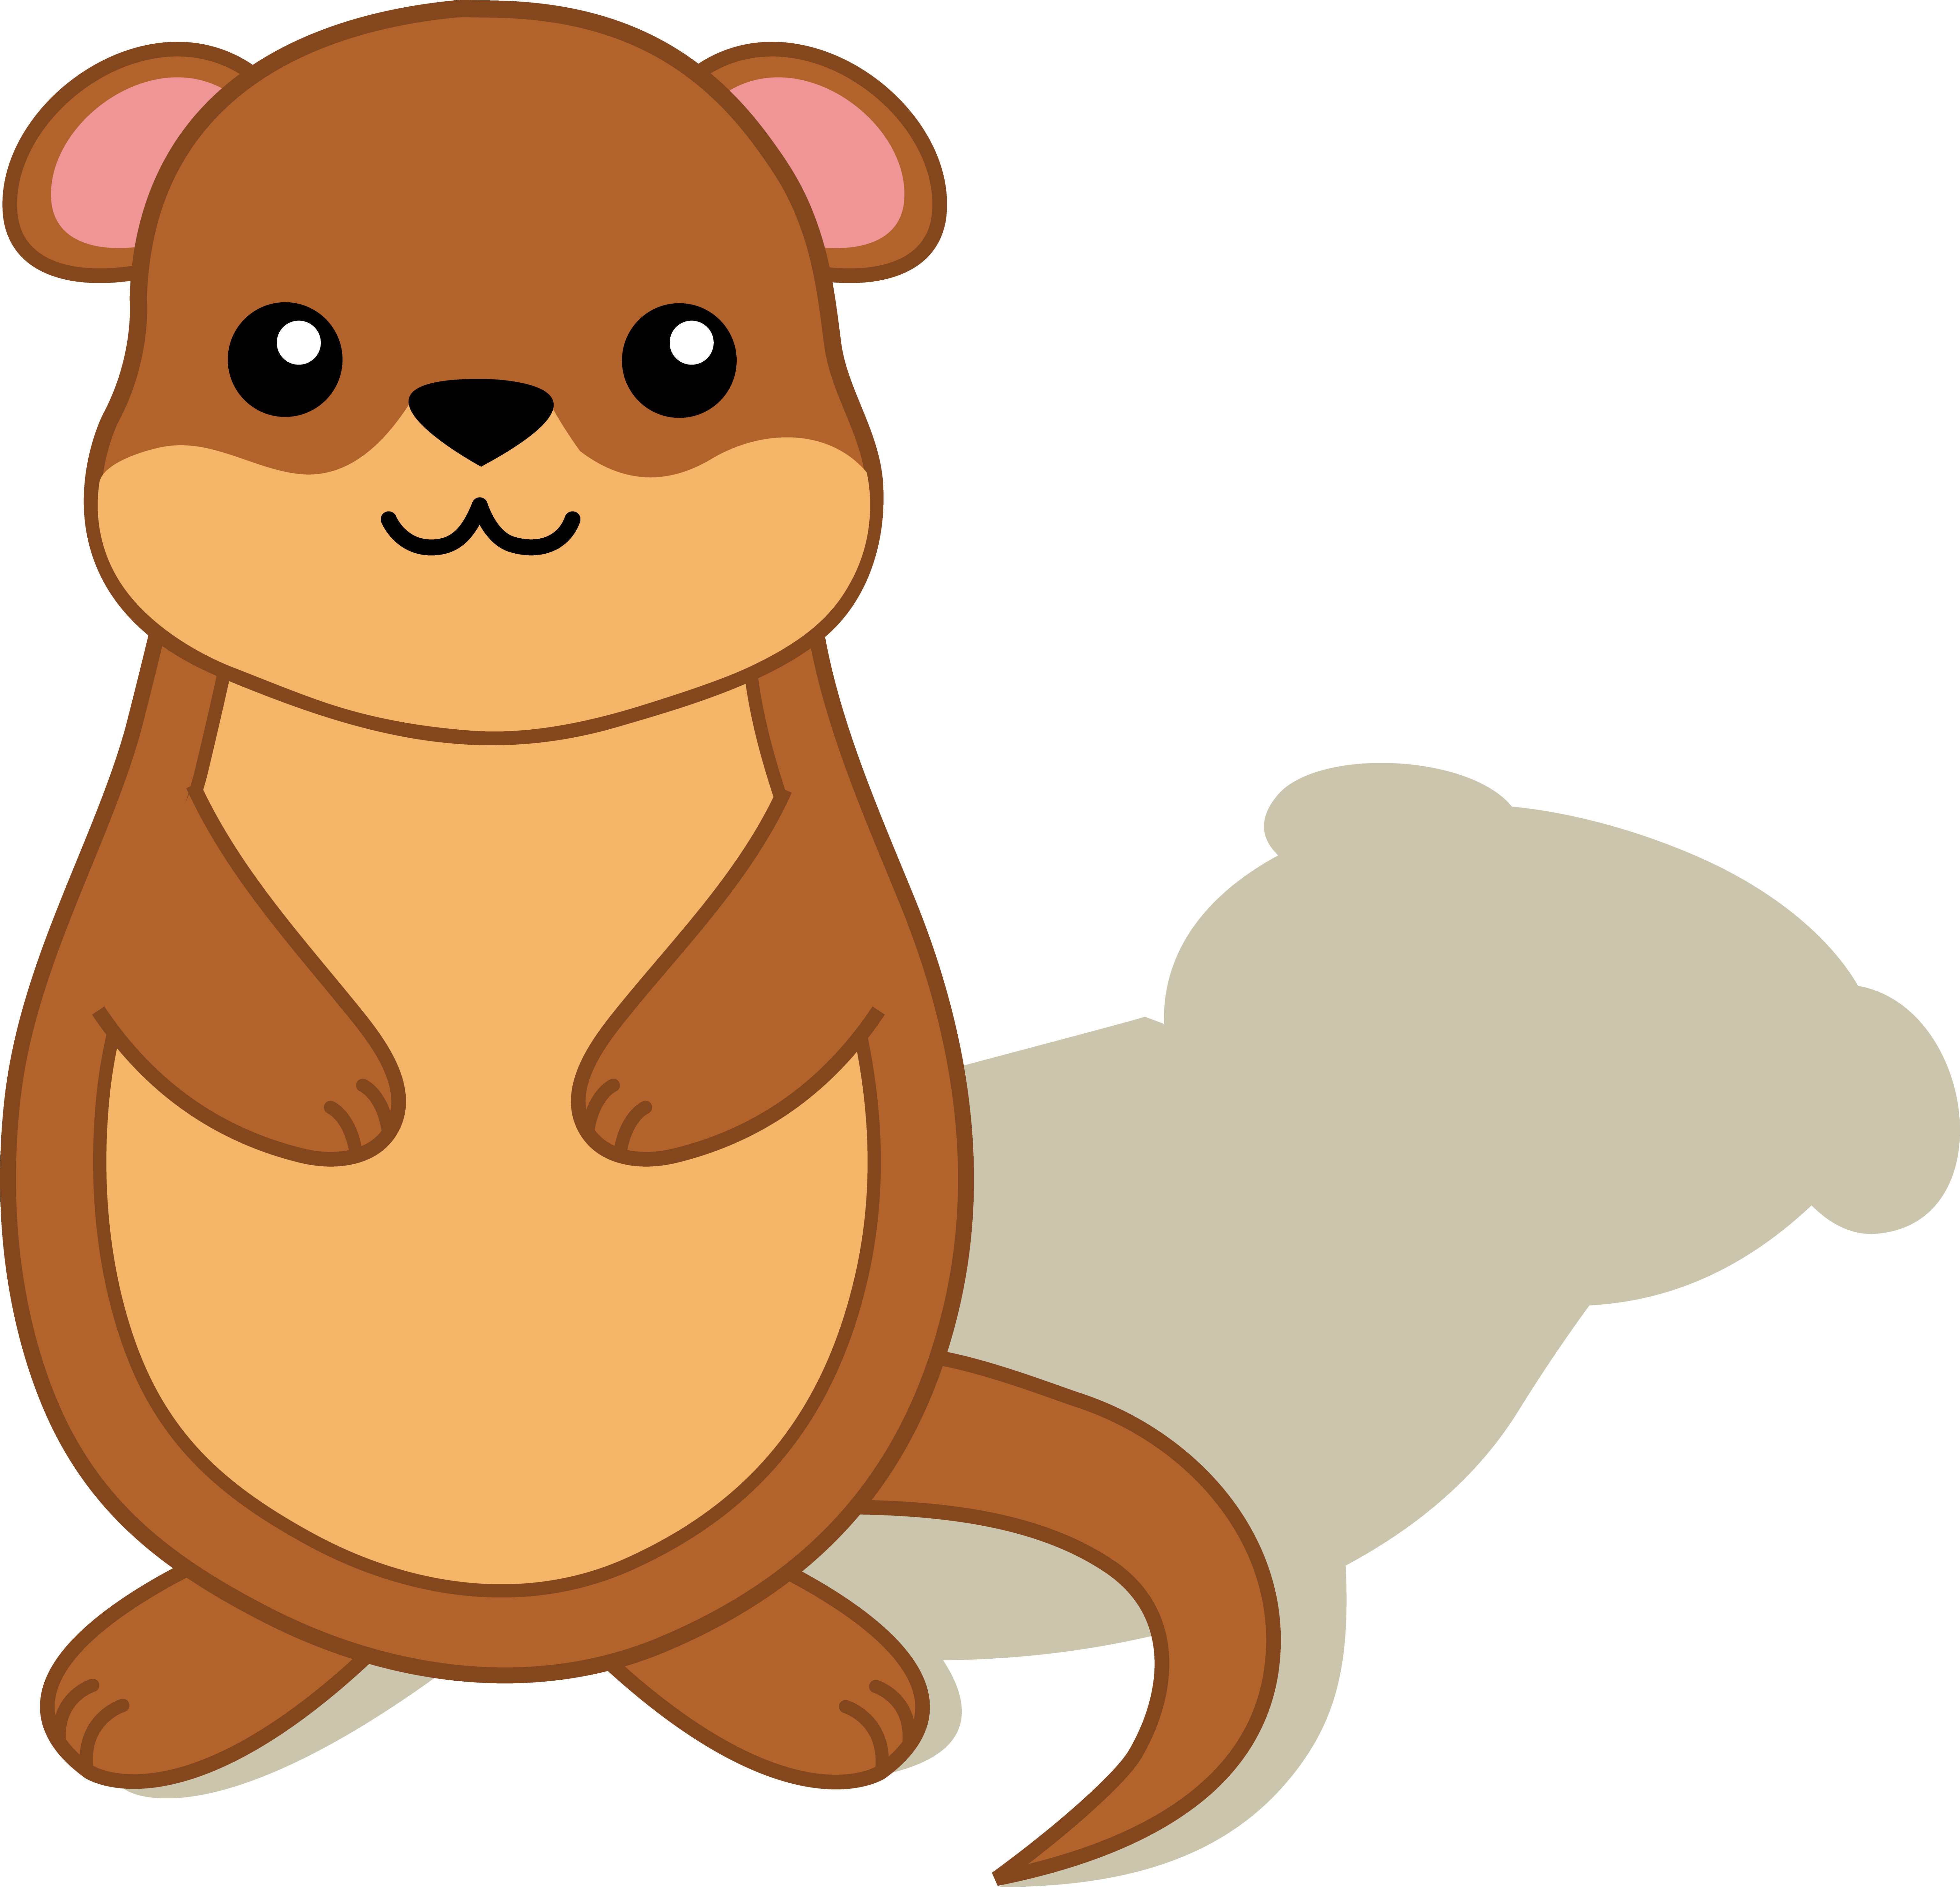 Groundhog cartoon clipart free download Free Groundhog Cliparts, Download Free Clip Art, Free Clip Art on ... free download